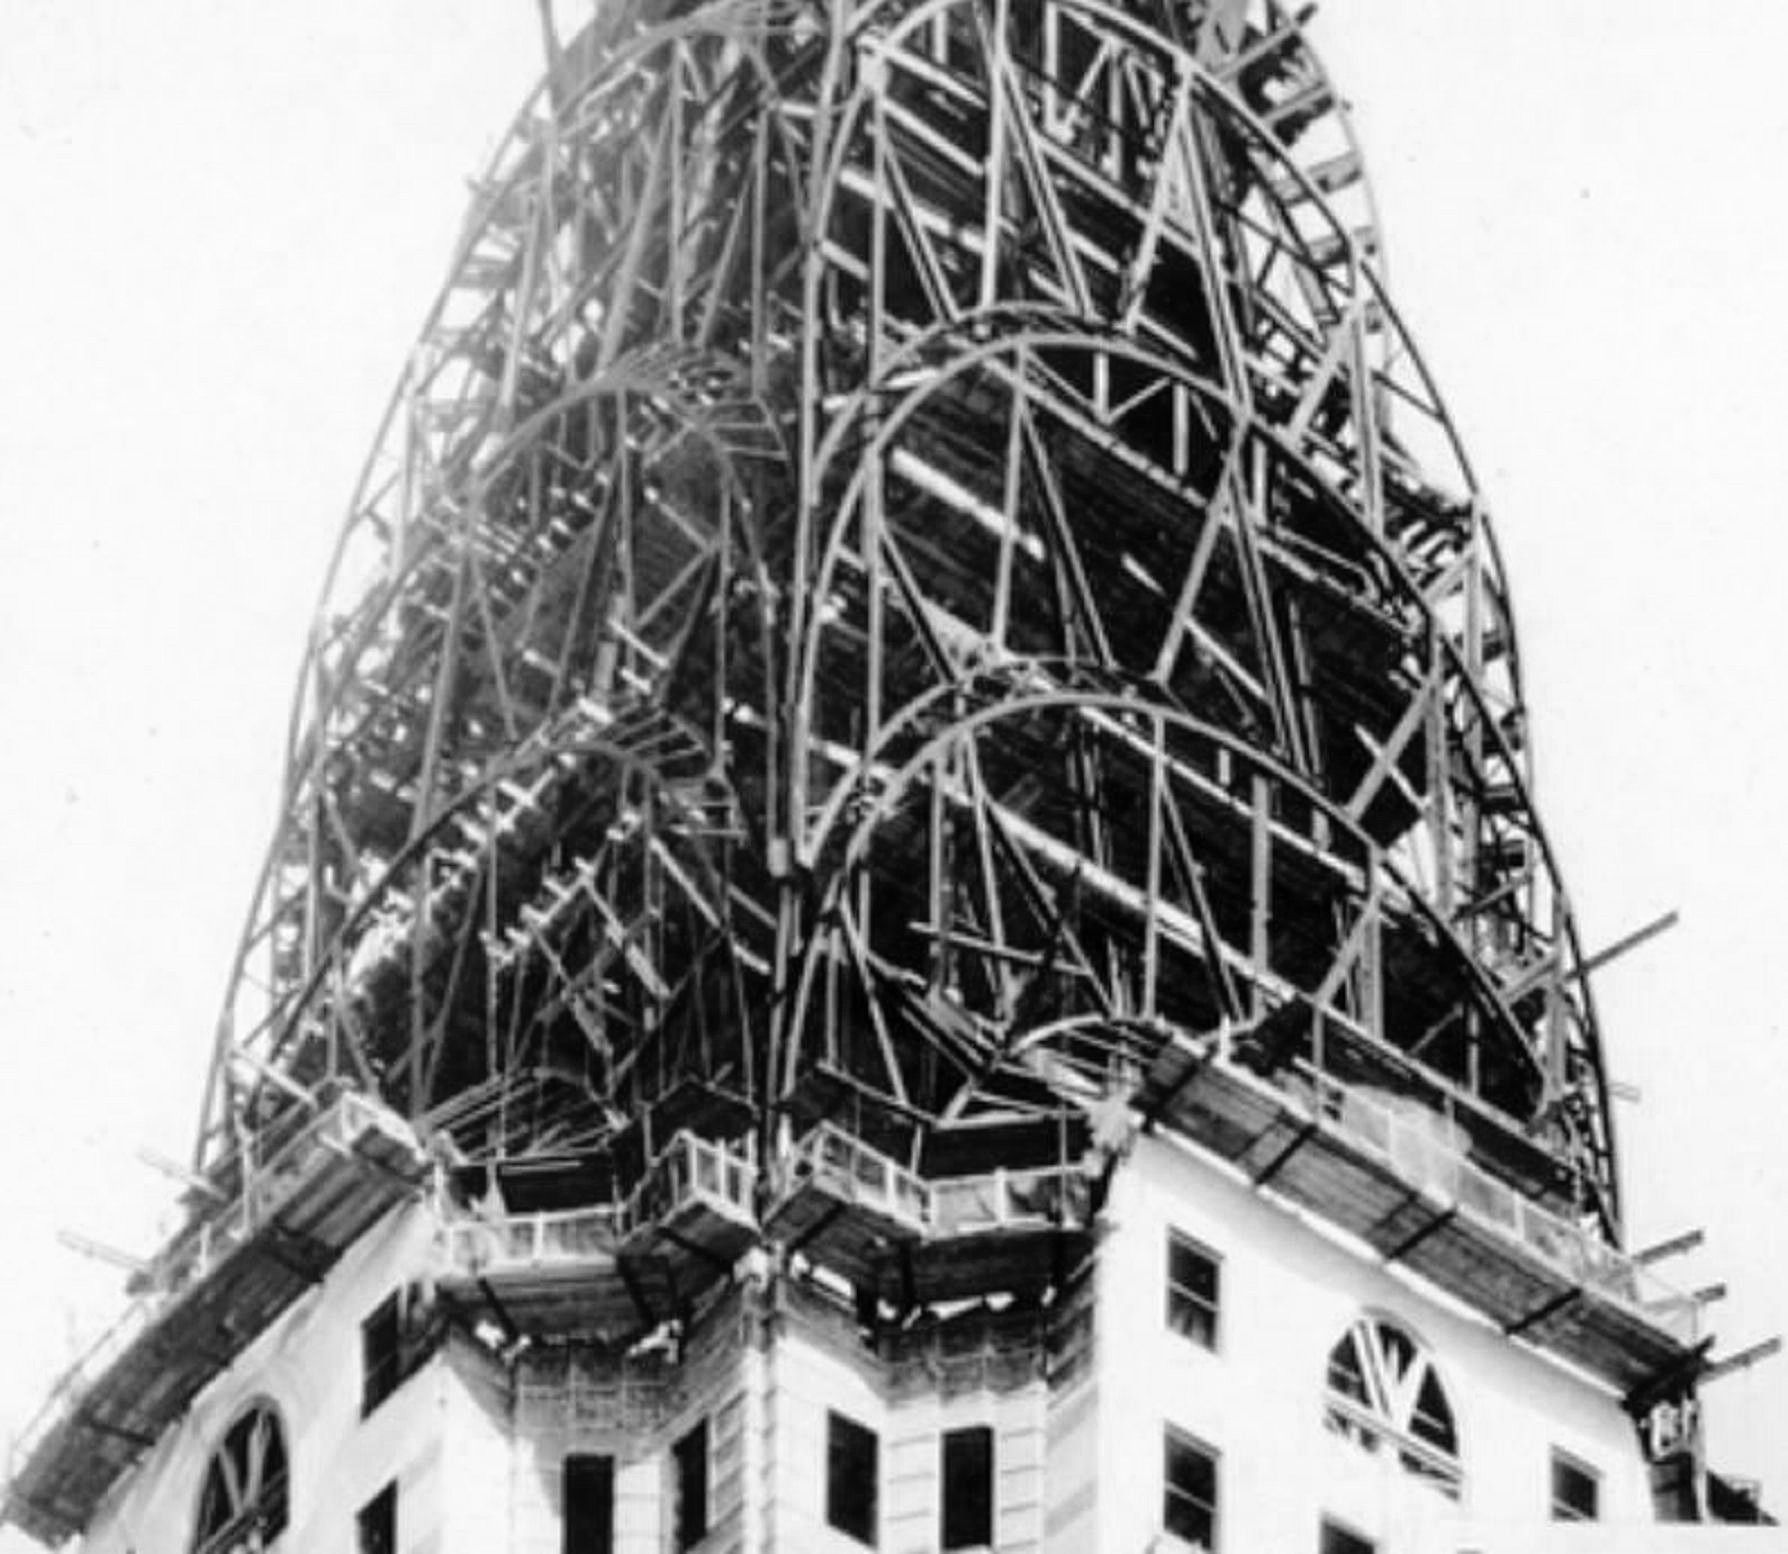 Walter Chrysler Ordered The Construction In Secret Of A 185 Foot High Steel Spire Inside His Buildings Uncompleted Tower When It Was Raised On October